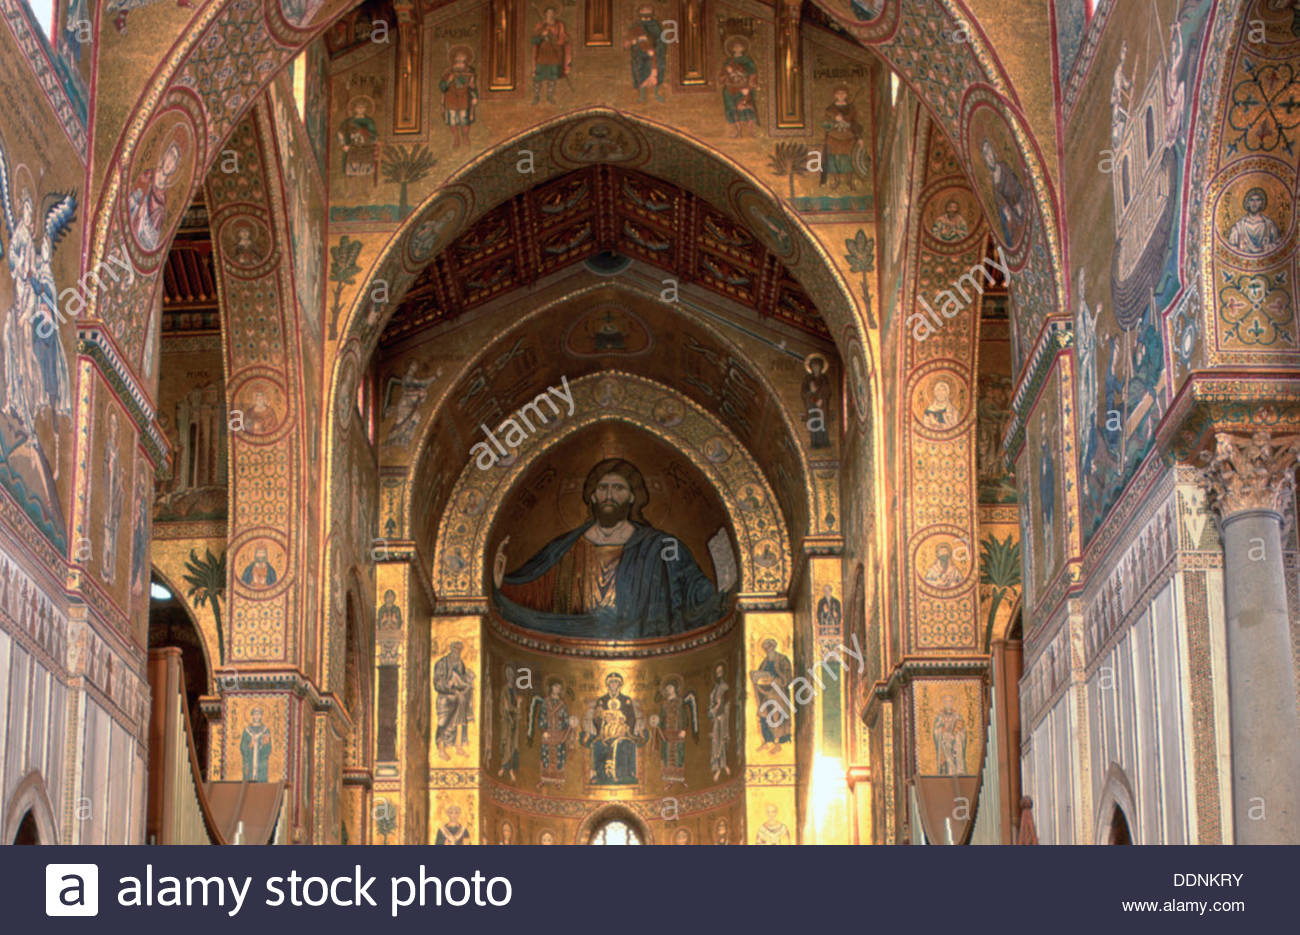 Interior of Monreale Cathedral, Sicily, Italy. Artist: Dr Stephen Coyne - Stock Image